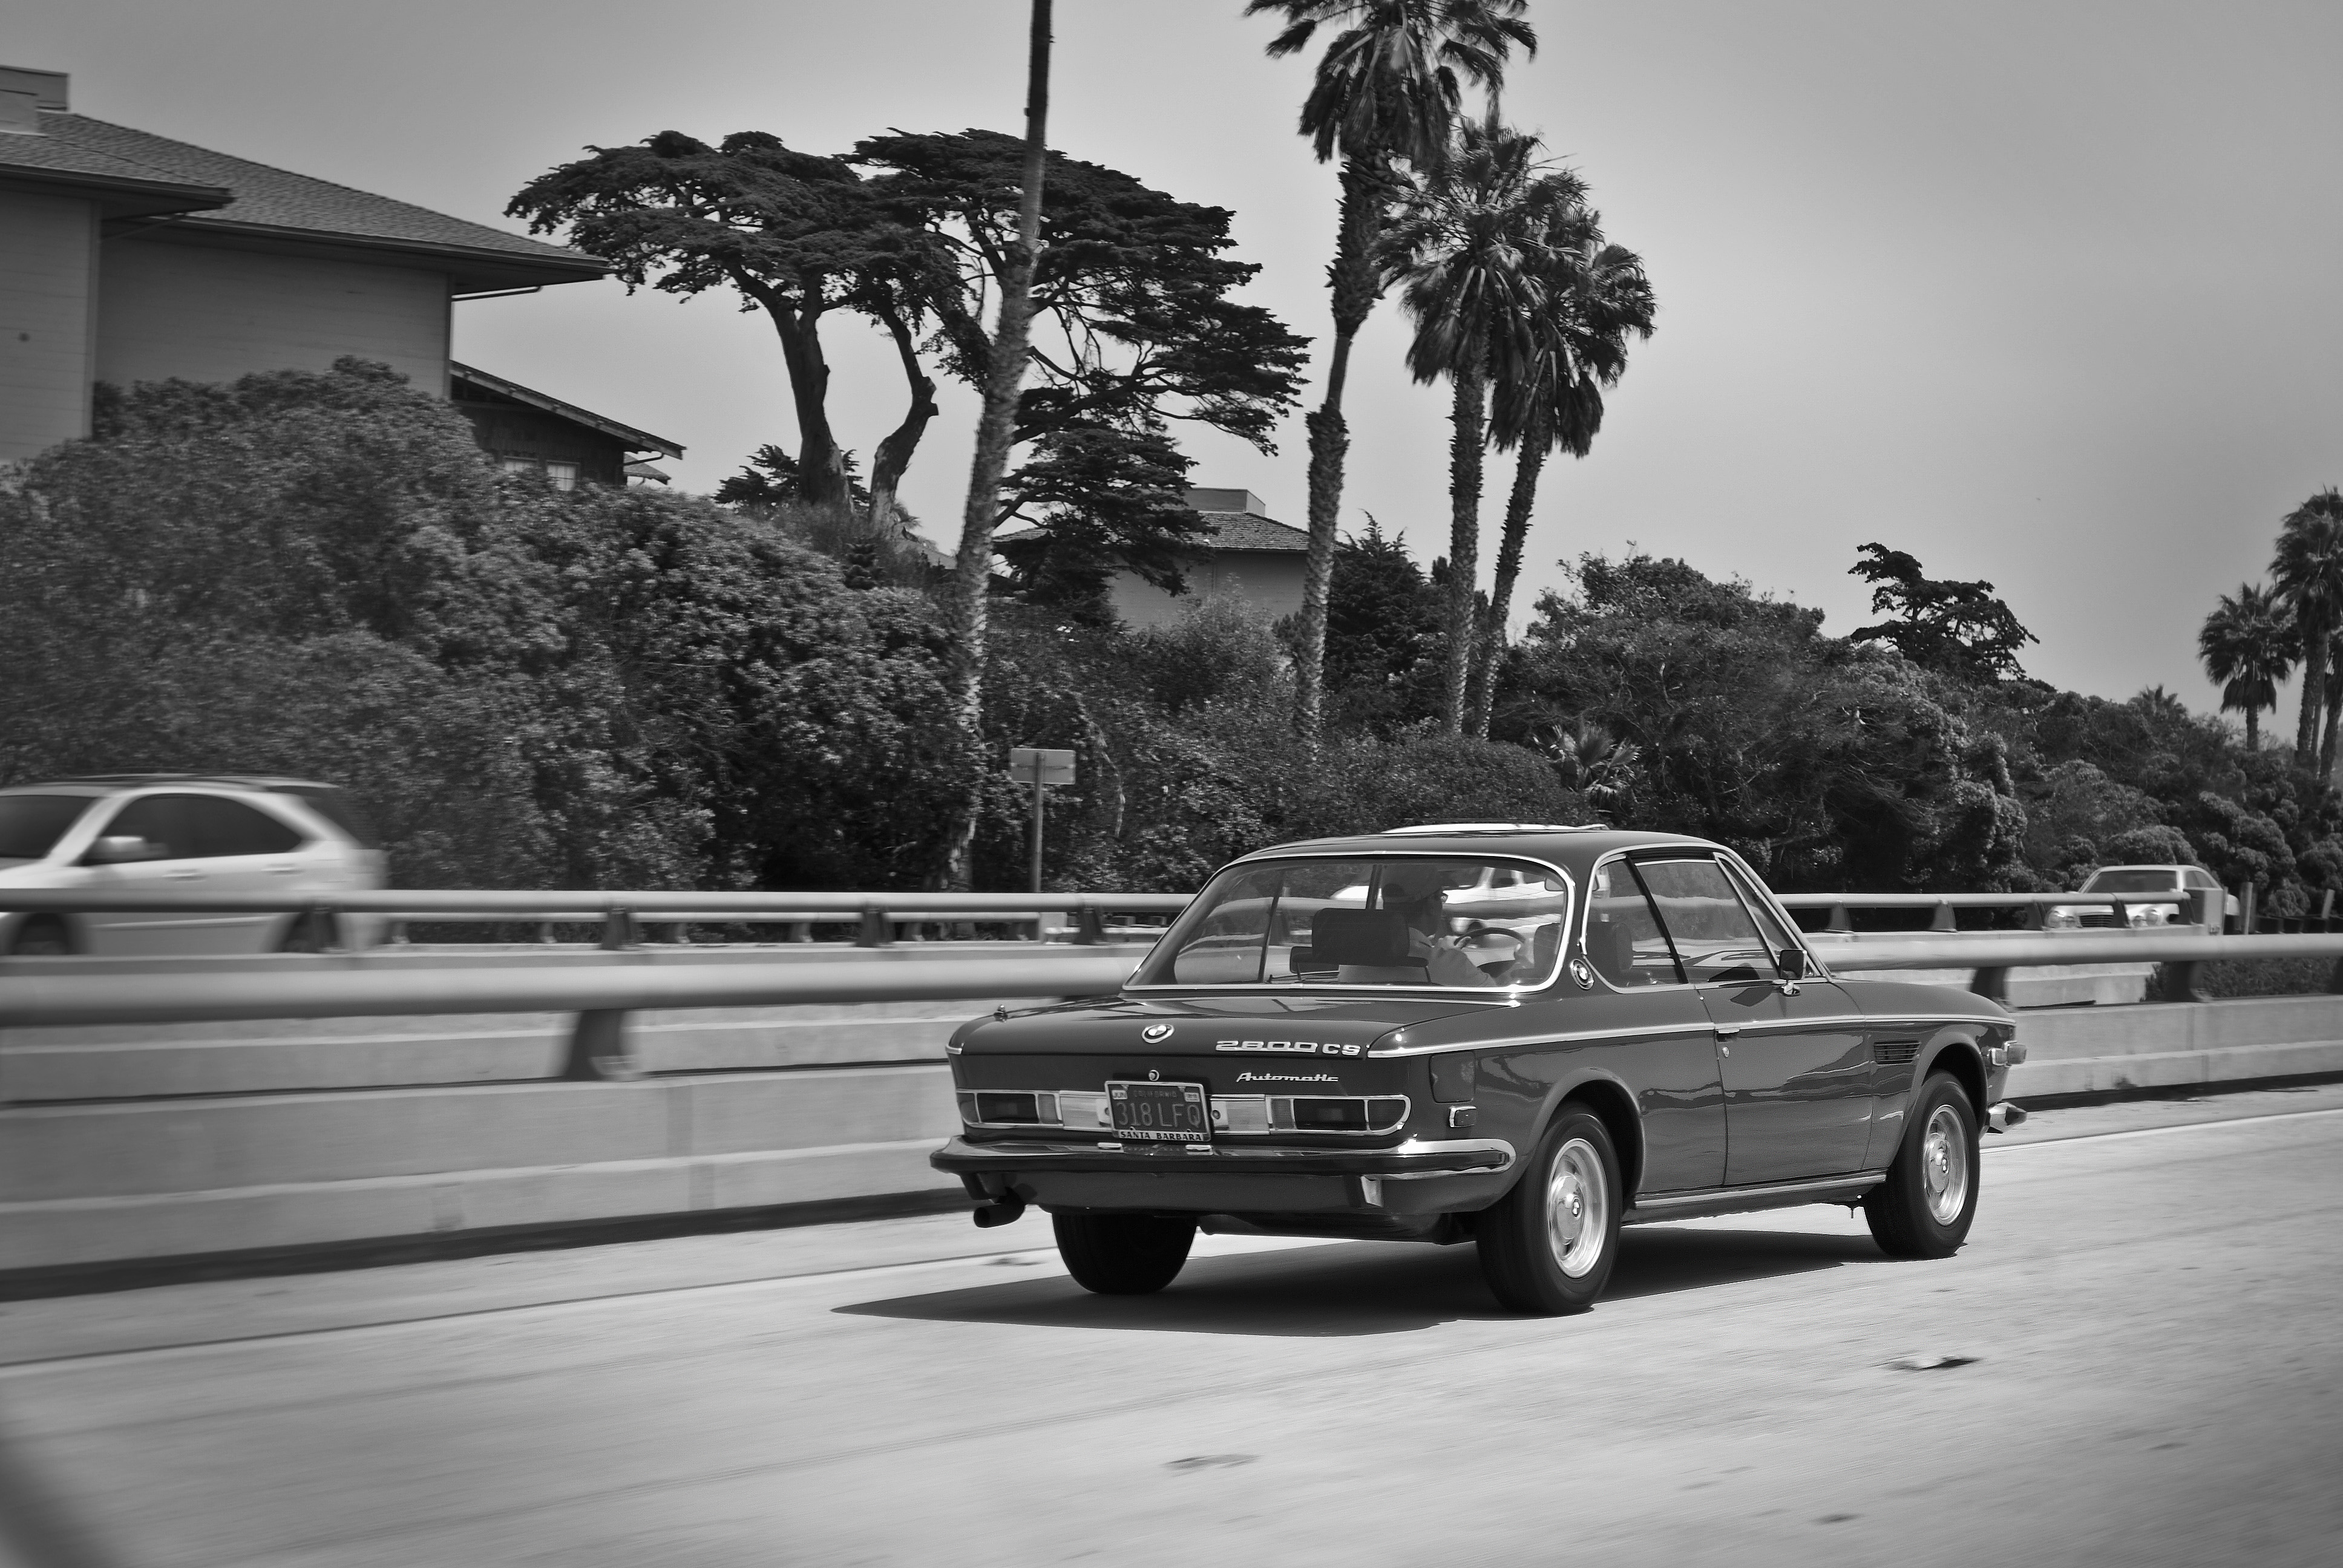 Nothing is more classy than a vintage commute down Highway 101. -Nick Salsbury